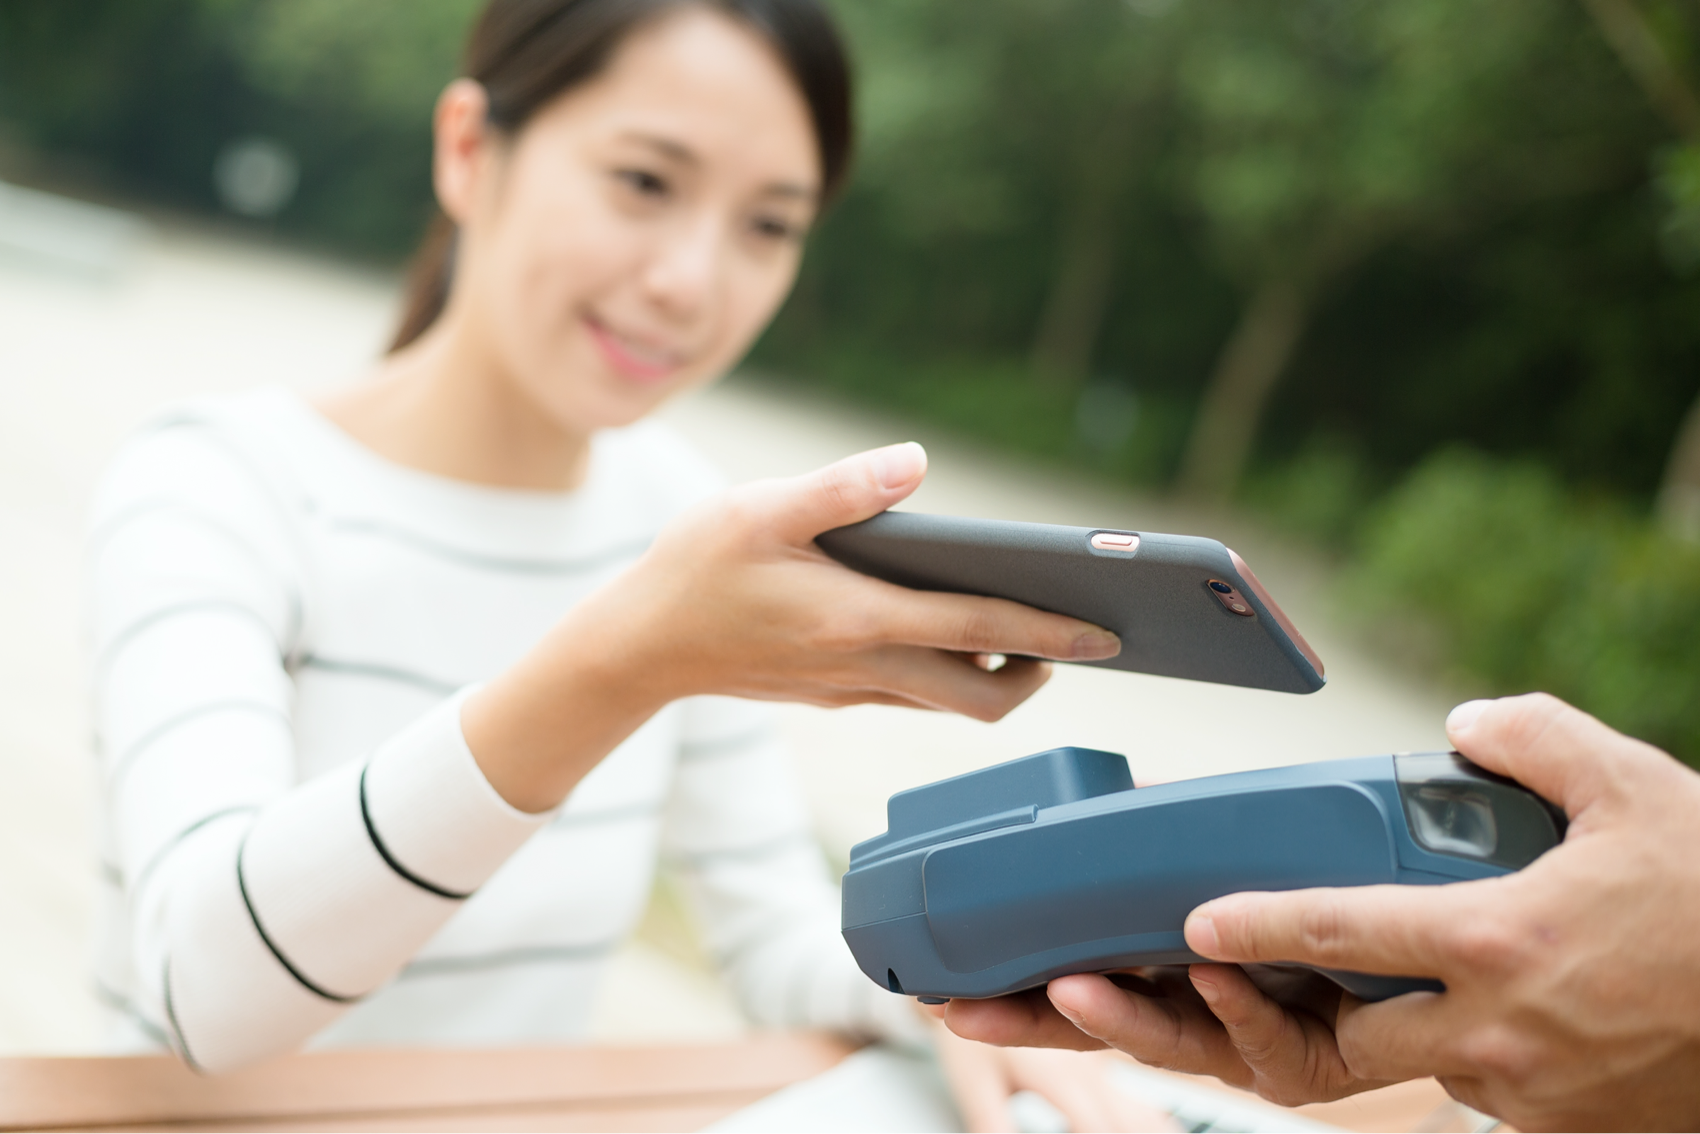 customer-paying-with-nfc-technology-7Q4487B